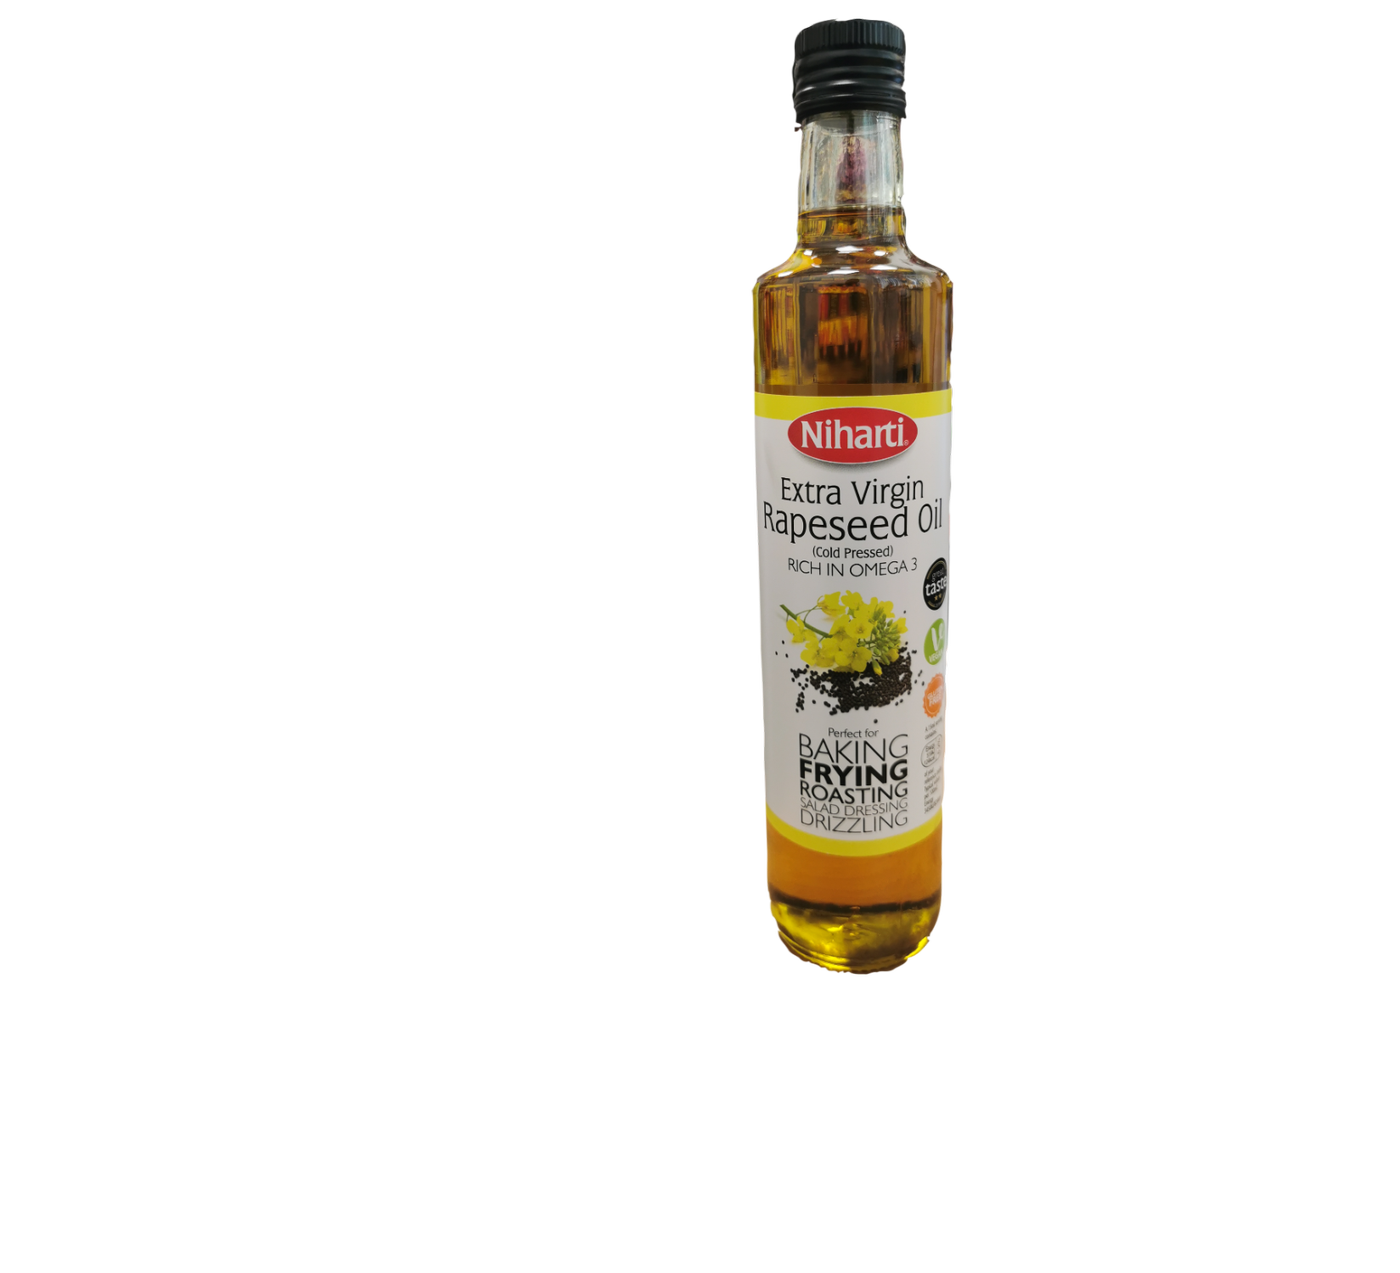 Niharti Extra Virgin Rapeseed Oil  (Cold Pressed)